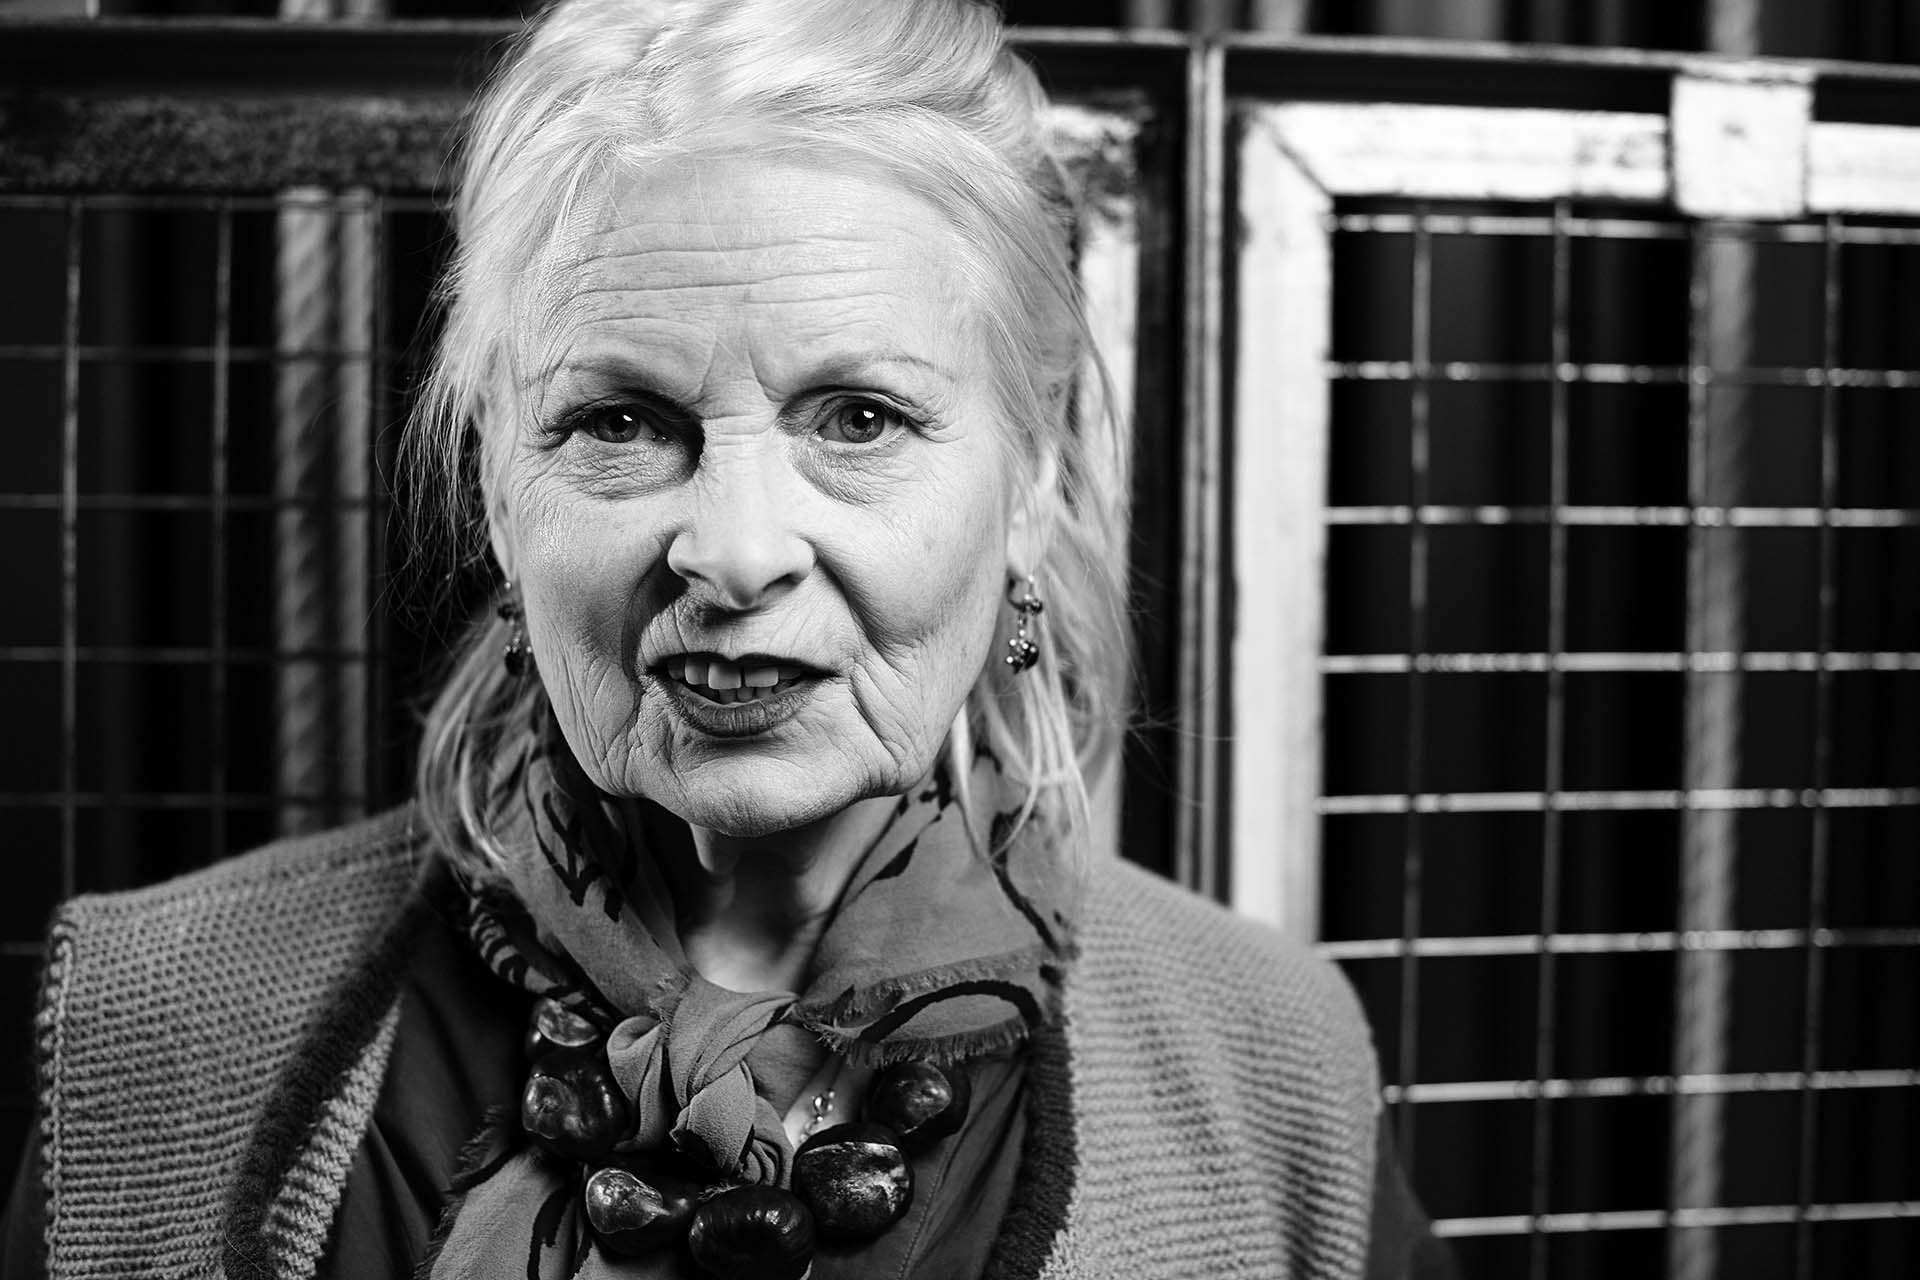 Photograph of fashion designer Vivienne Westwood black and white portrait photography Jon Parker Lee uk